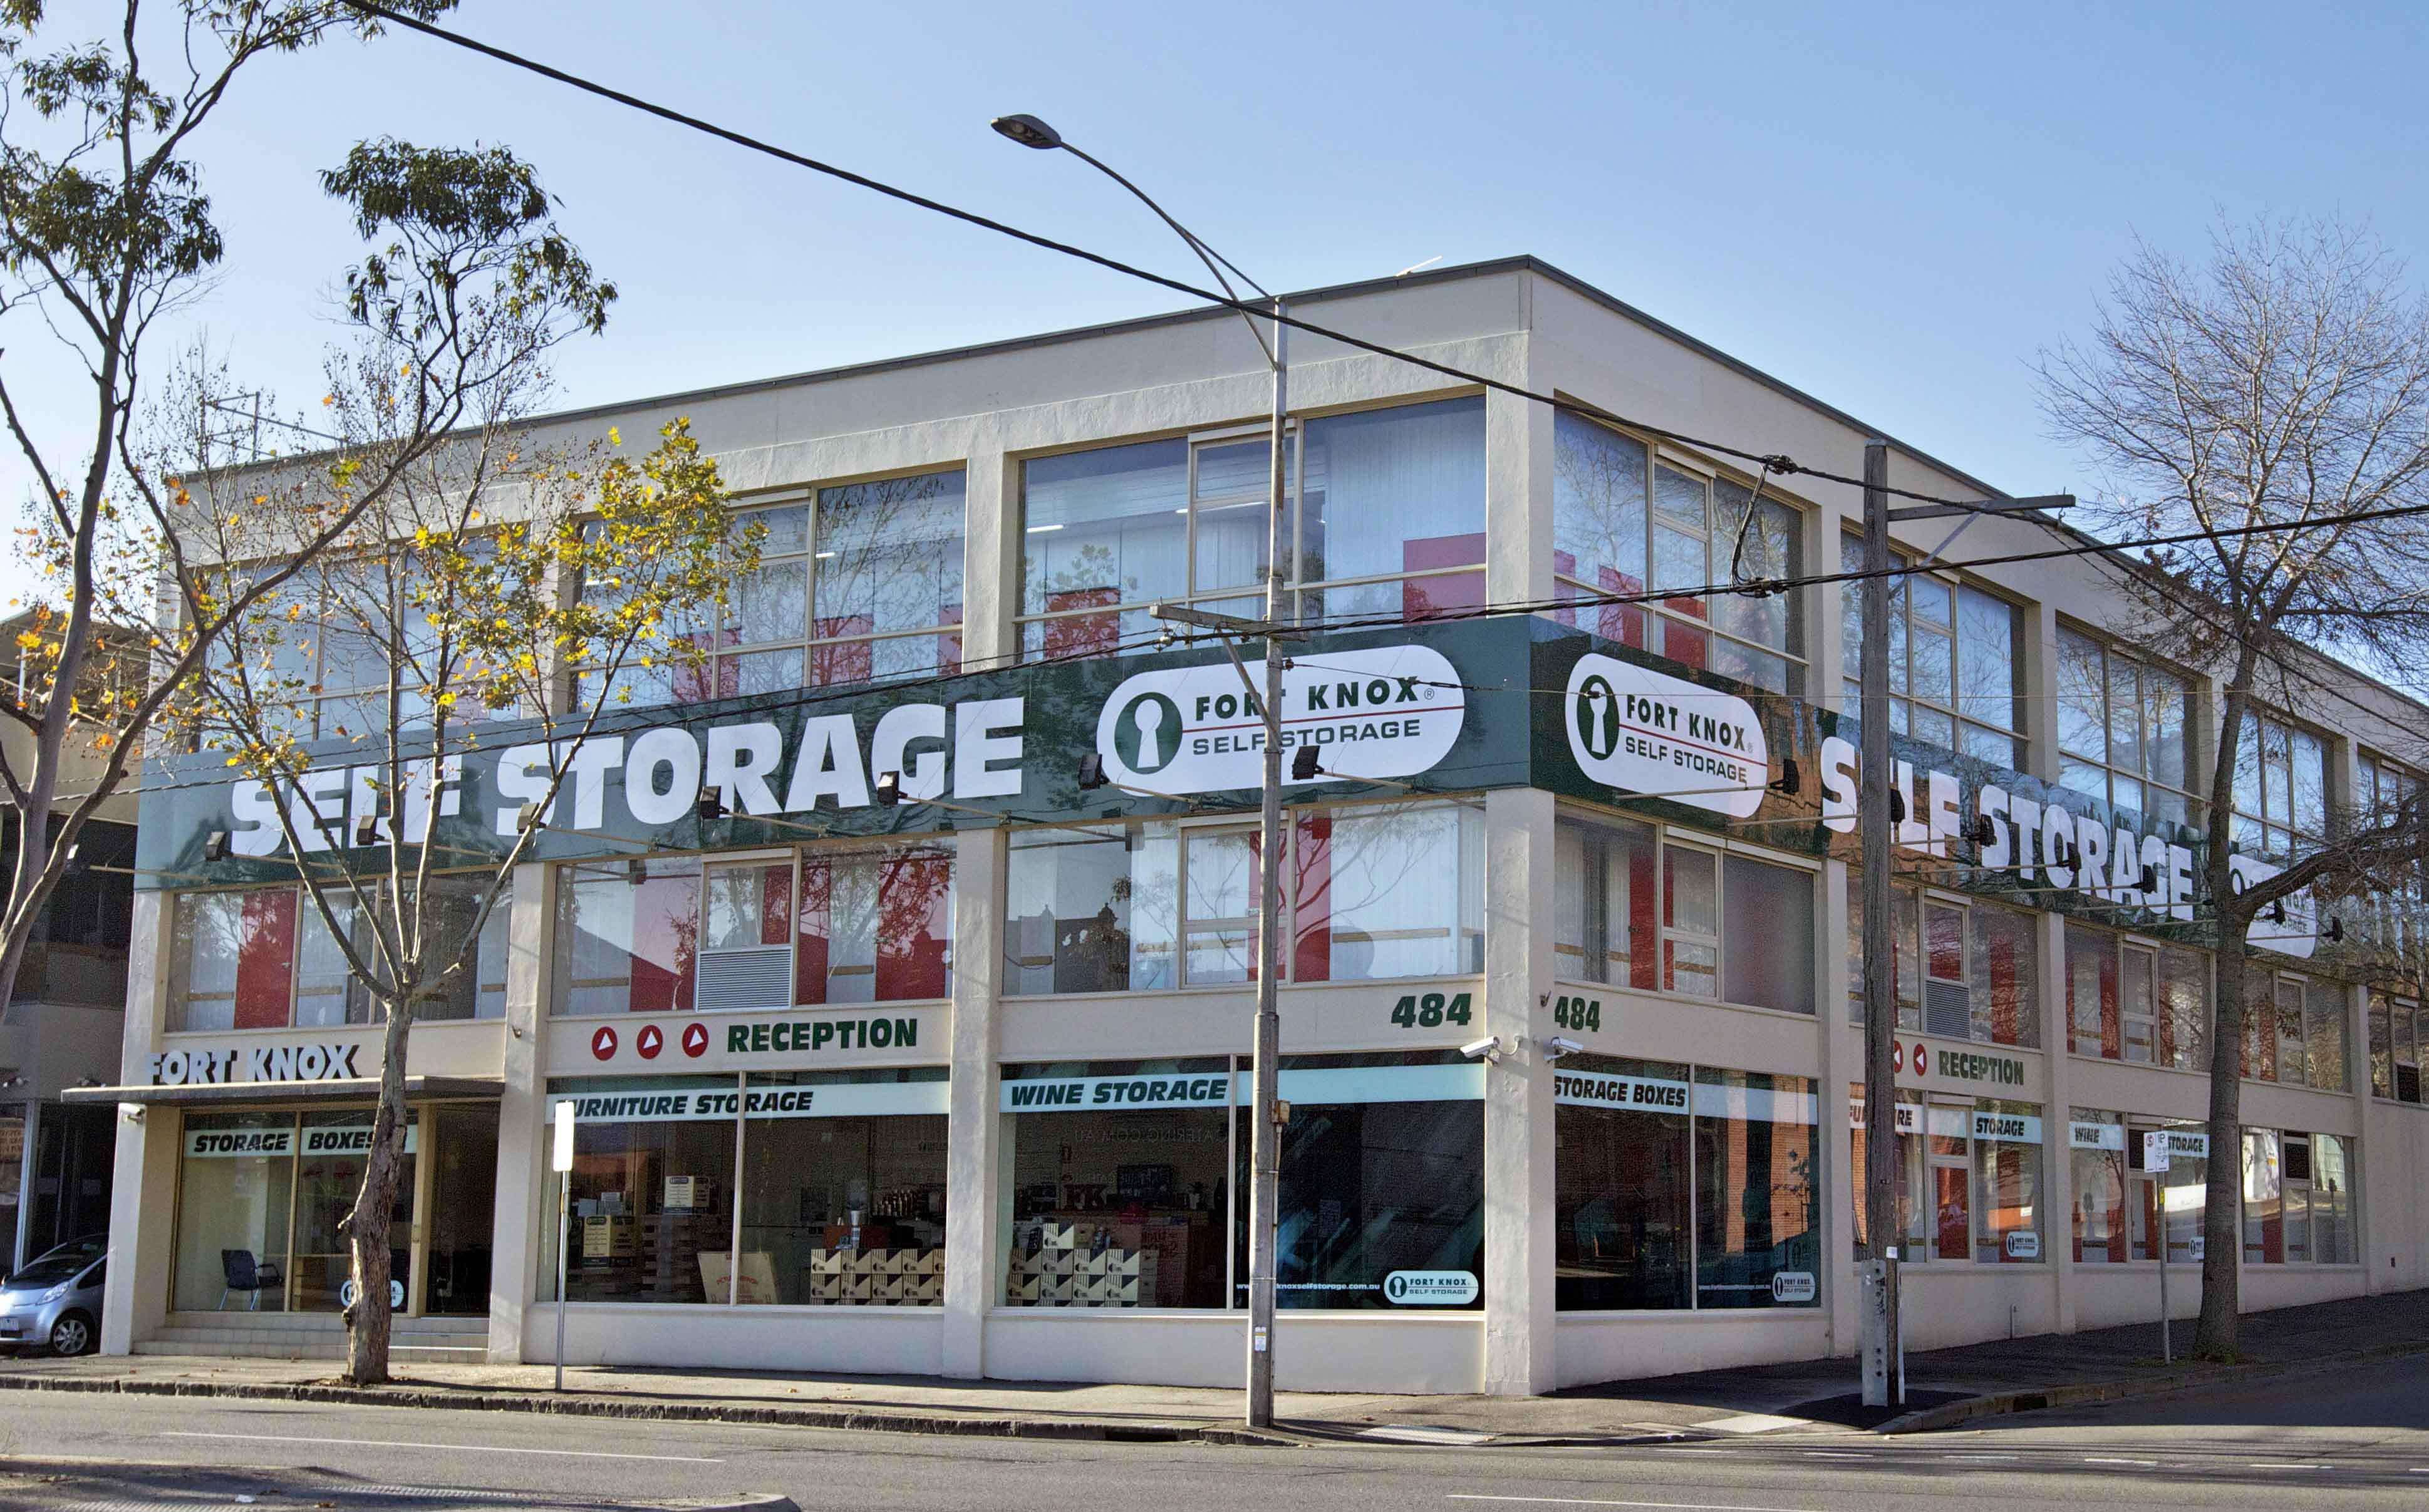 Melbourne Storage Fort Knox